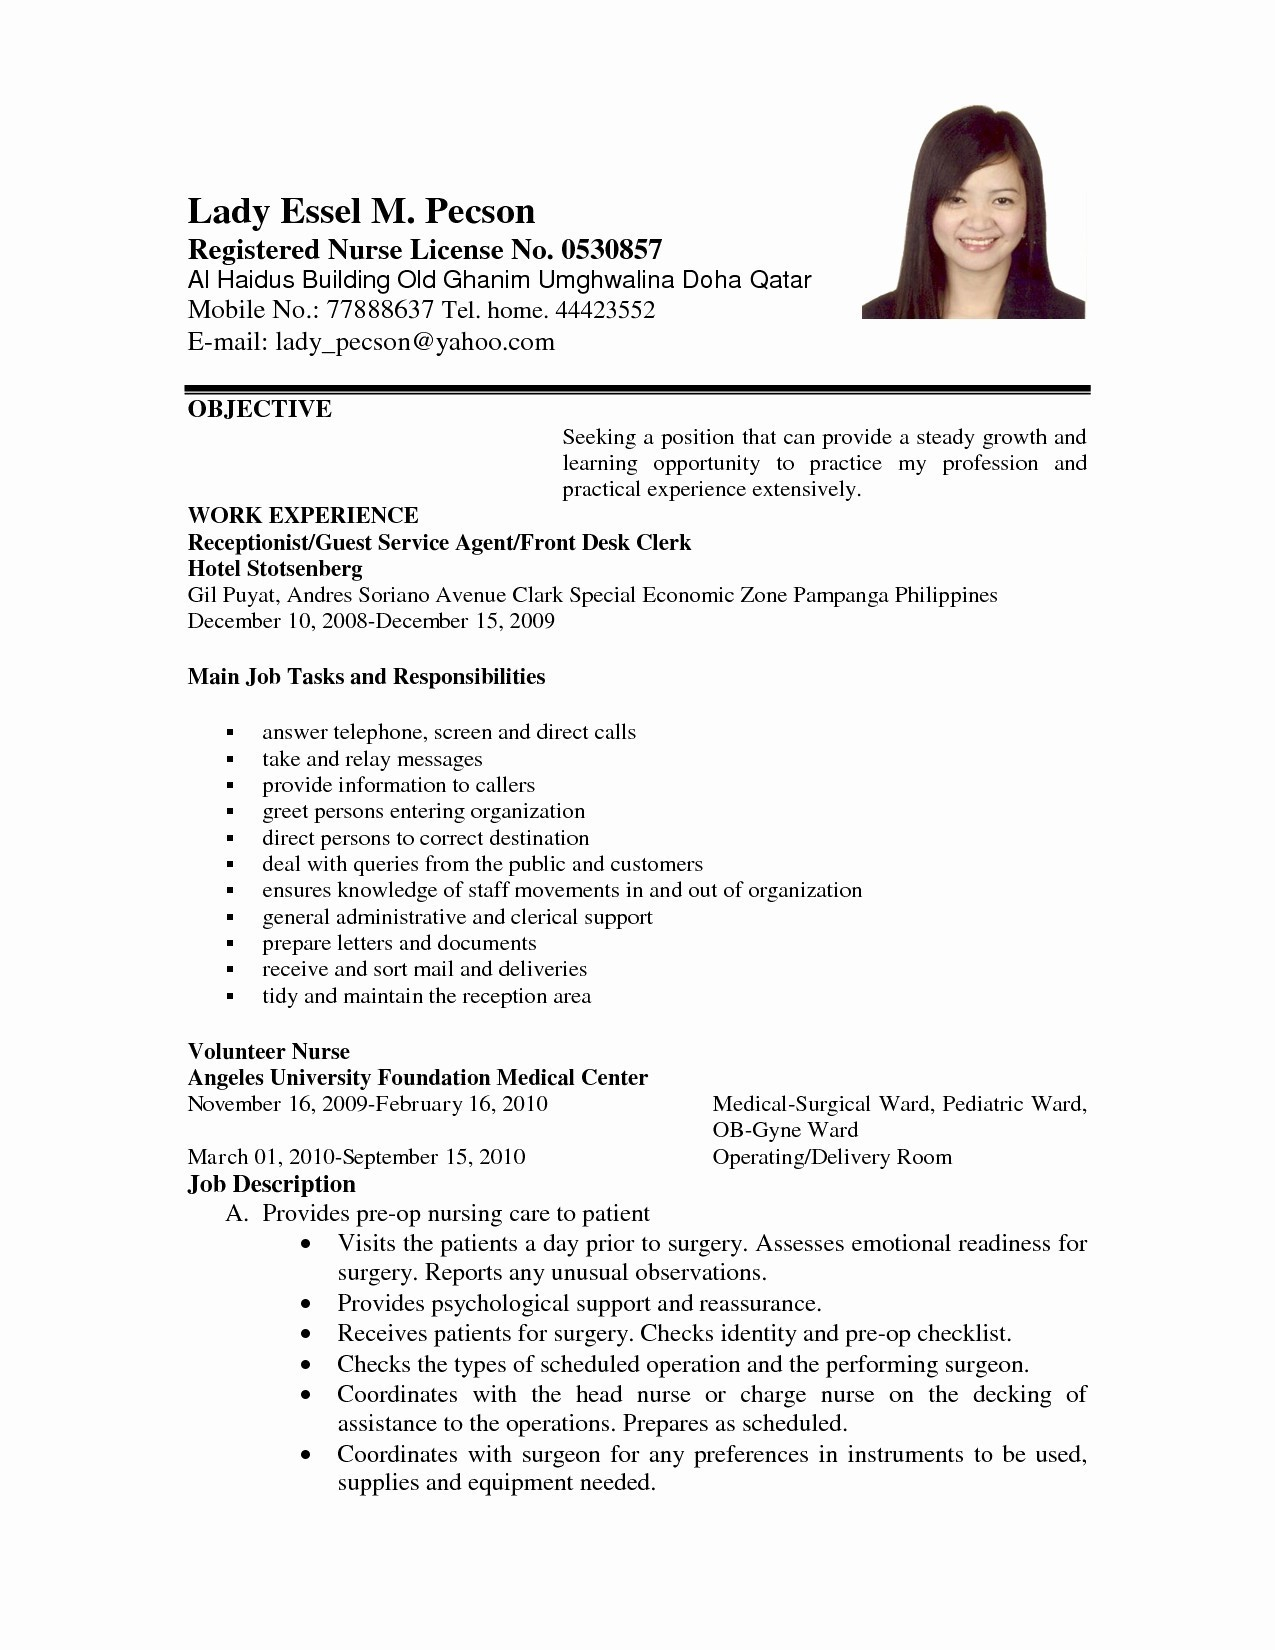 Hospitality Resume Template - Free Examples Resumes Awesome Best Pr Resume Template Elegant